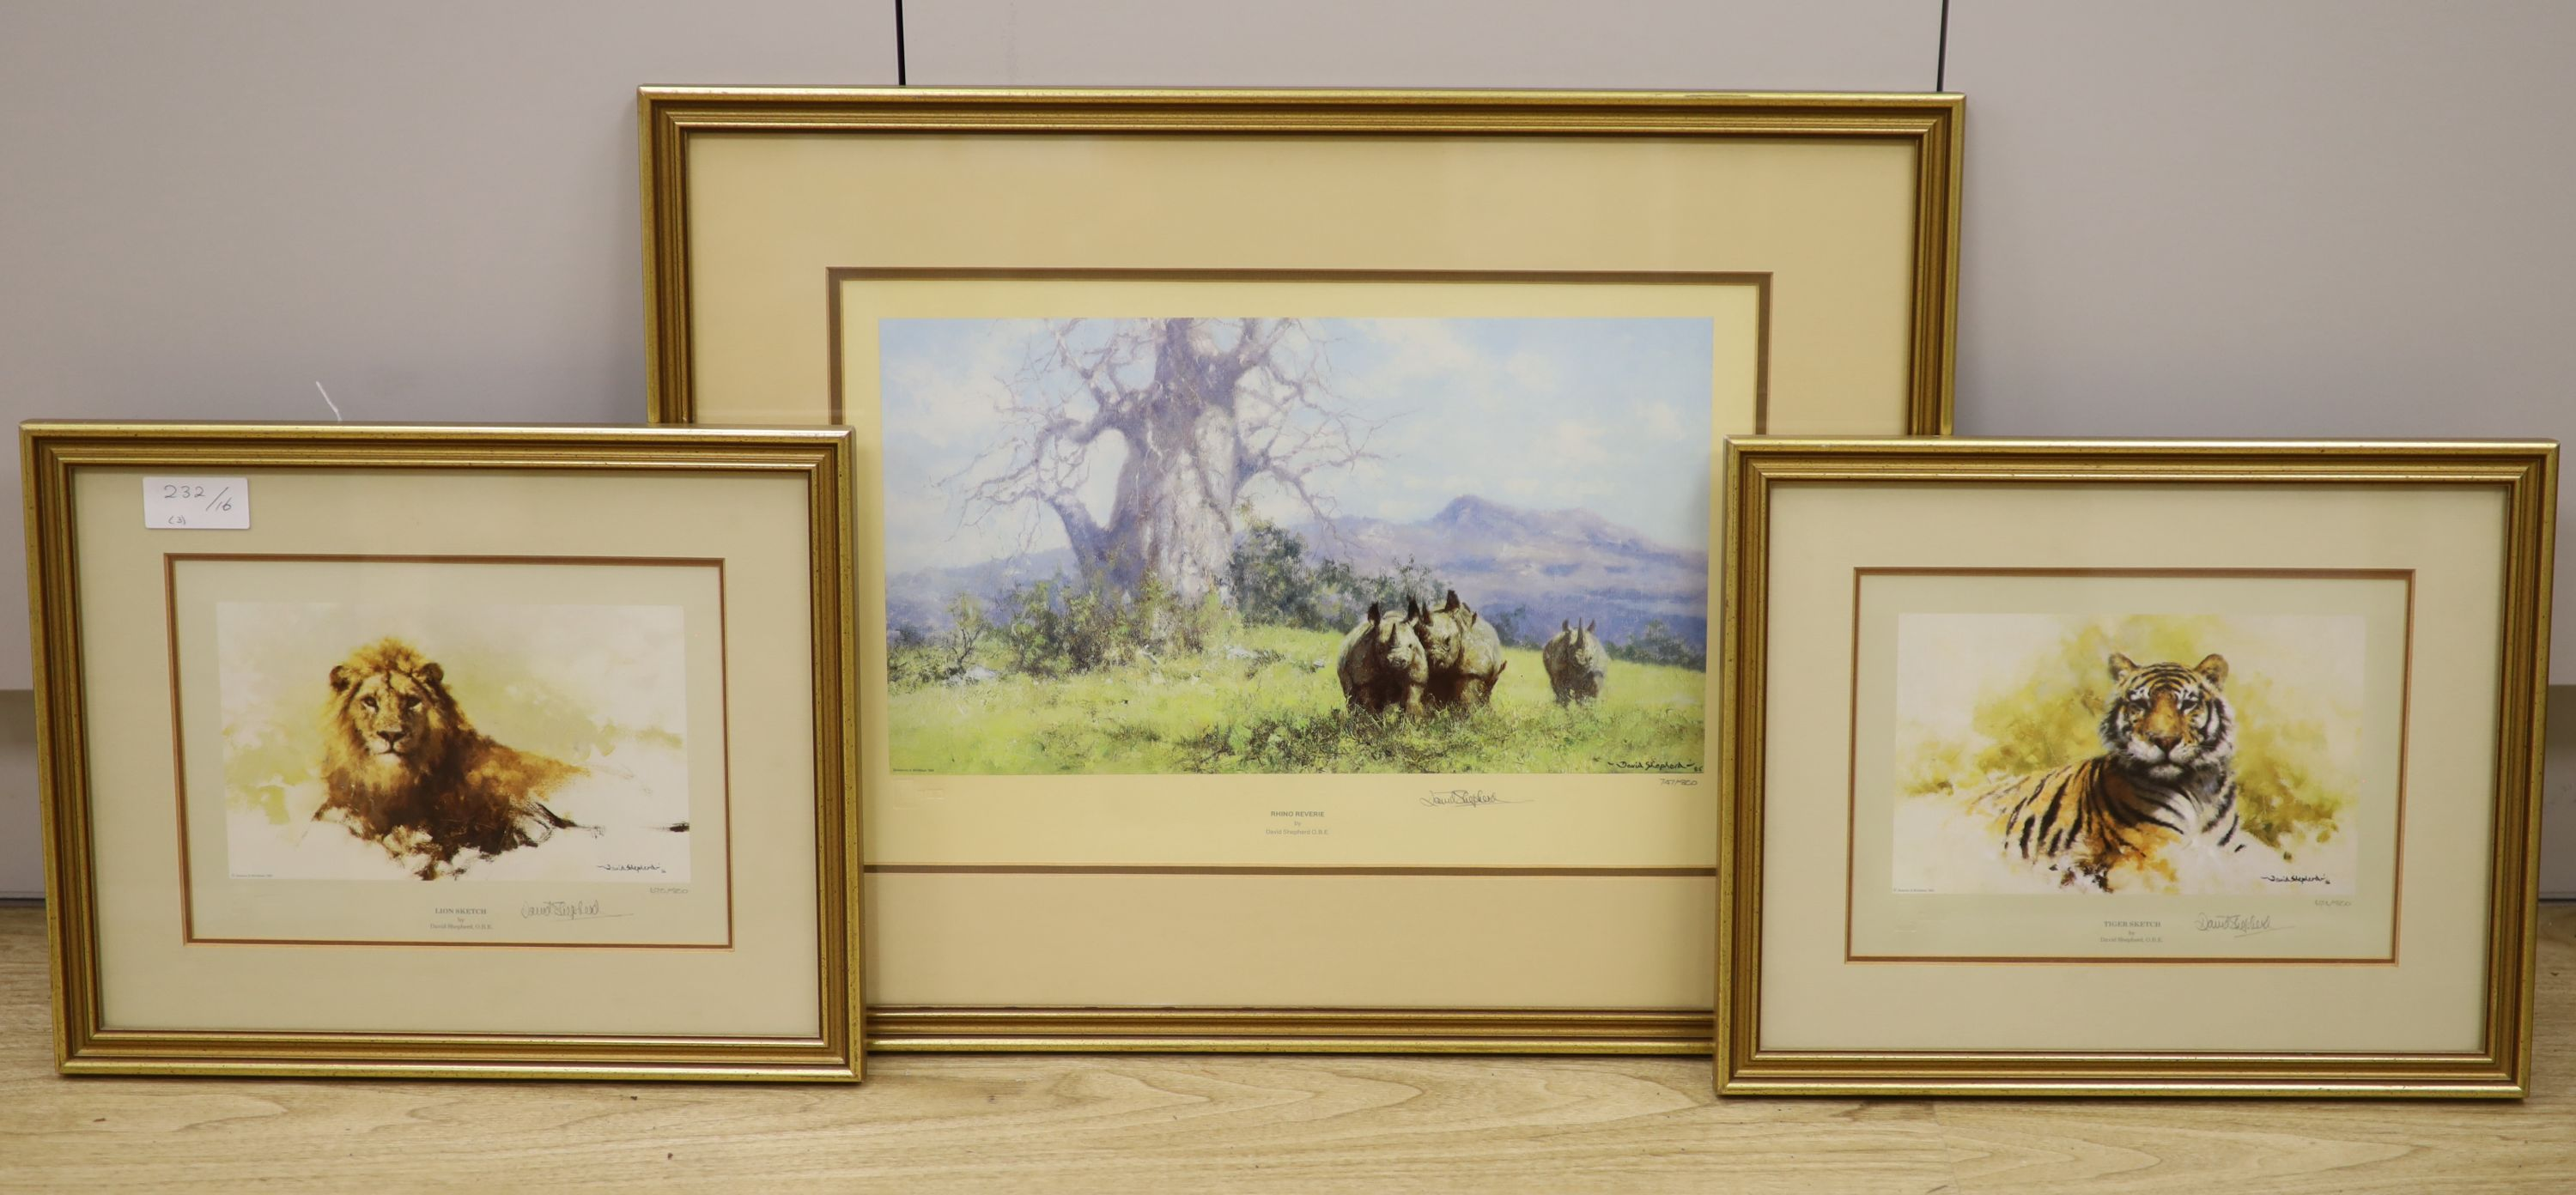 Three David Shepherd limited edition prints; Lion Sketch, Tiger Sketch and Rhino Reverie, signed